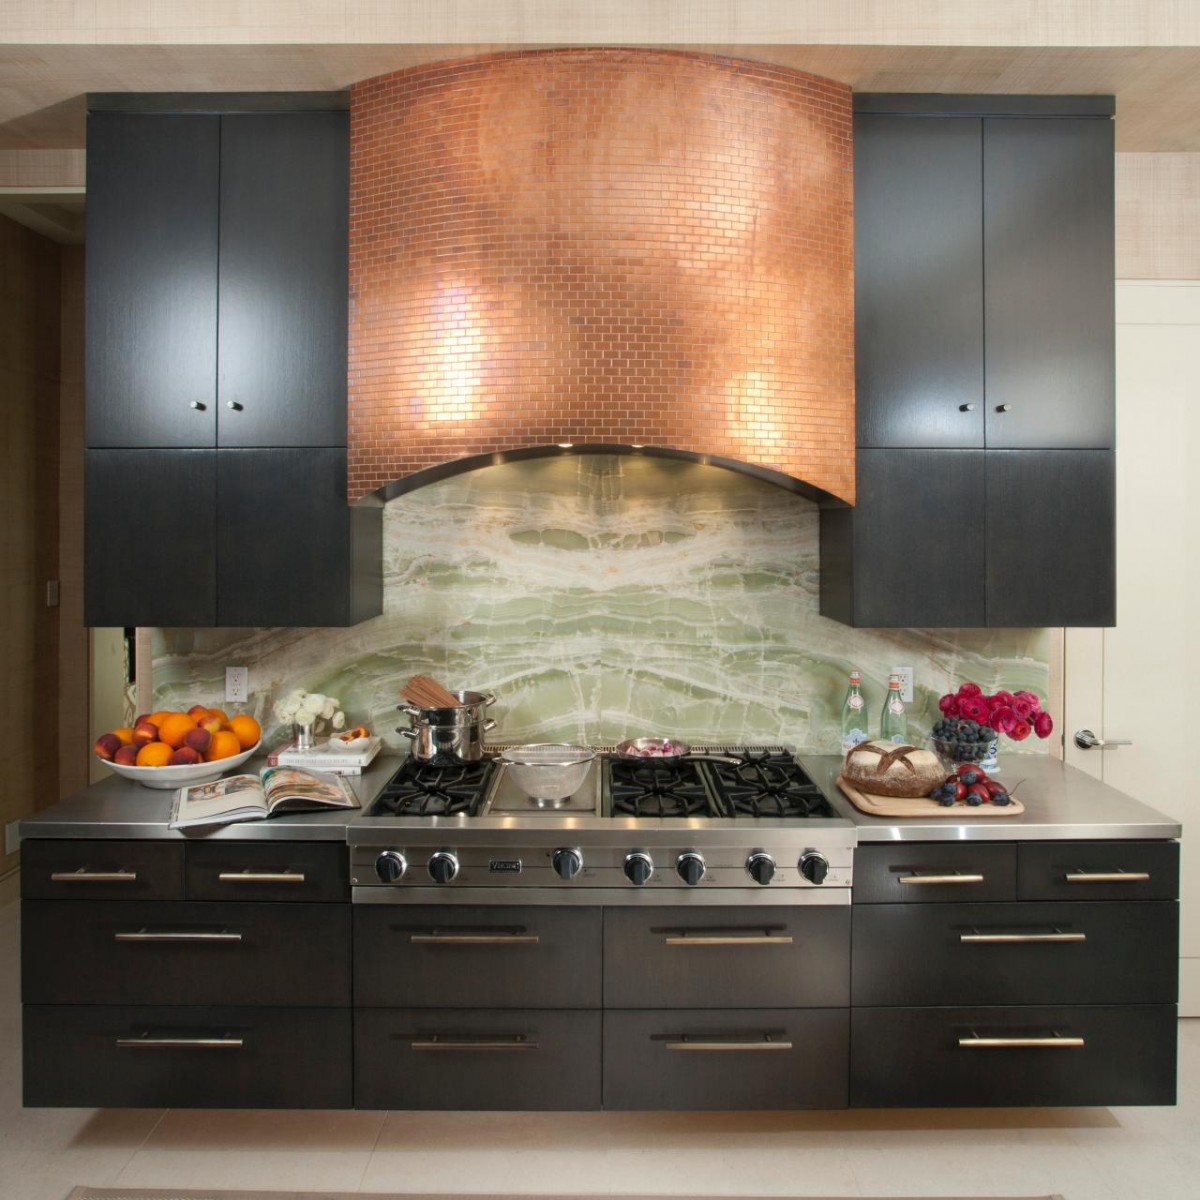 Kitchen Hood: 4 Types Of Kitchen Range Hoods To Transform Your Kitchen